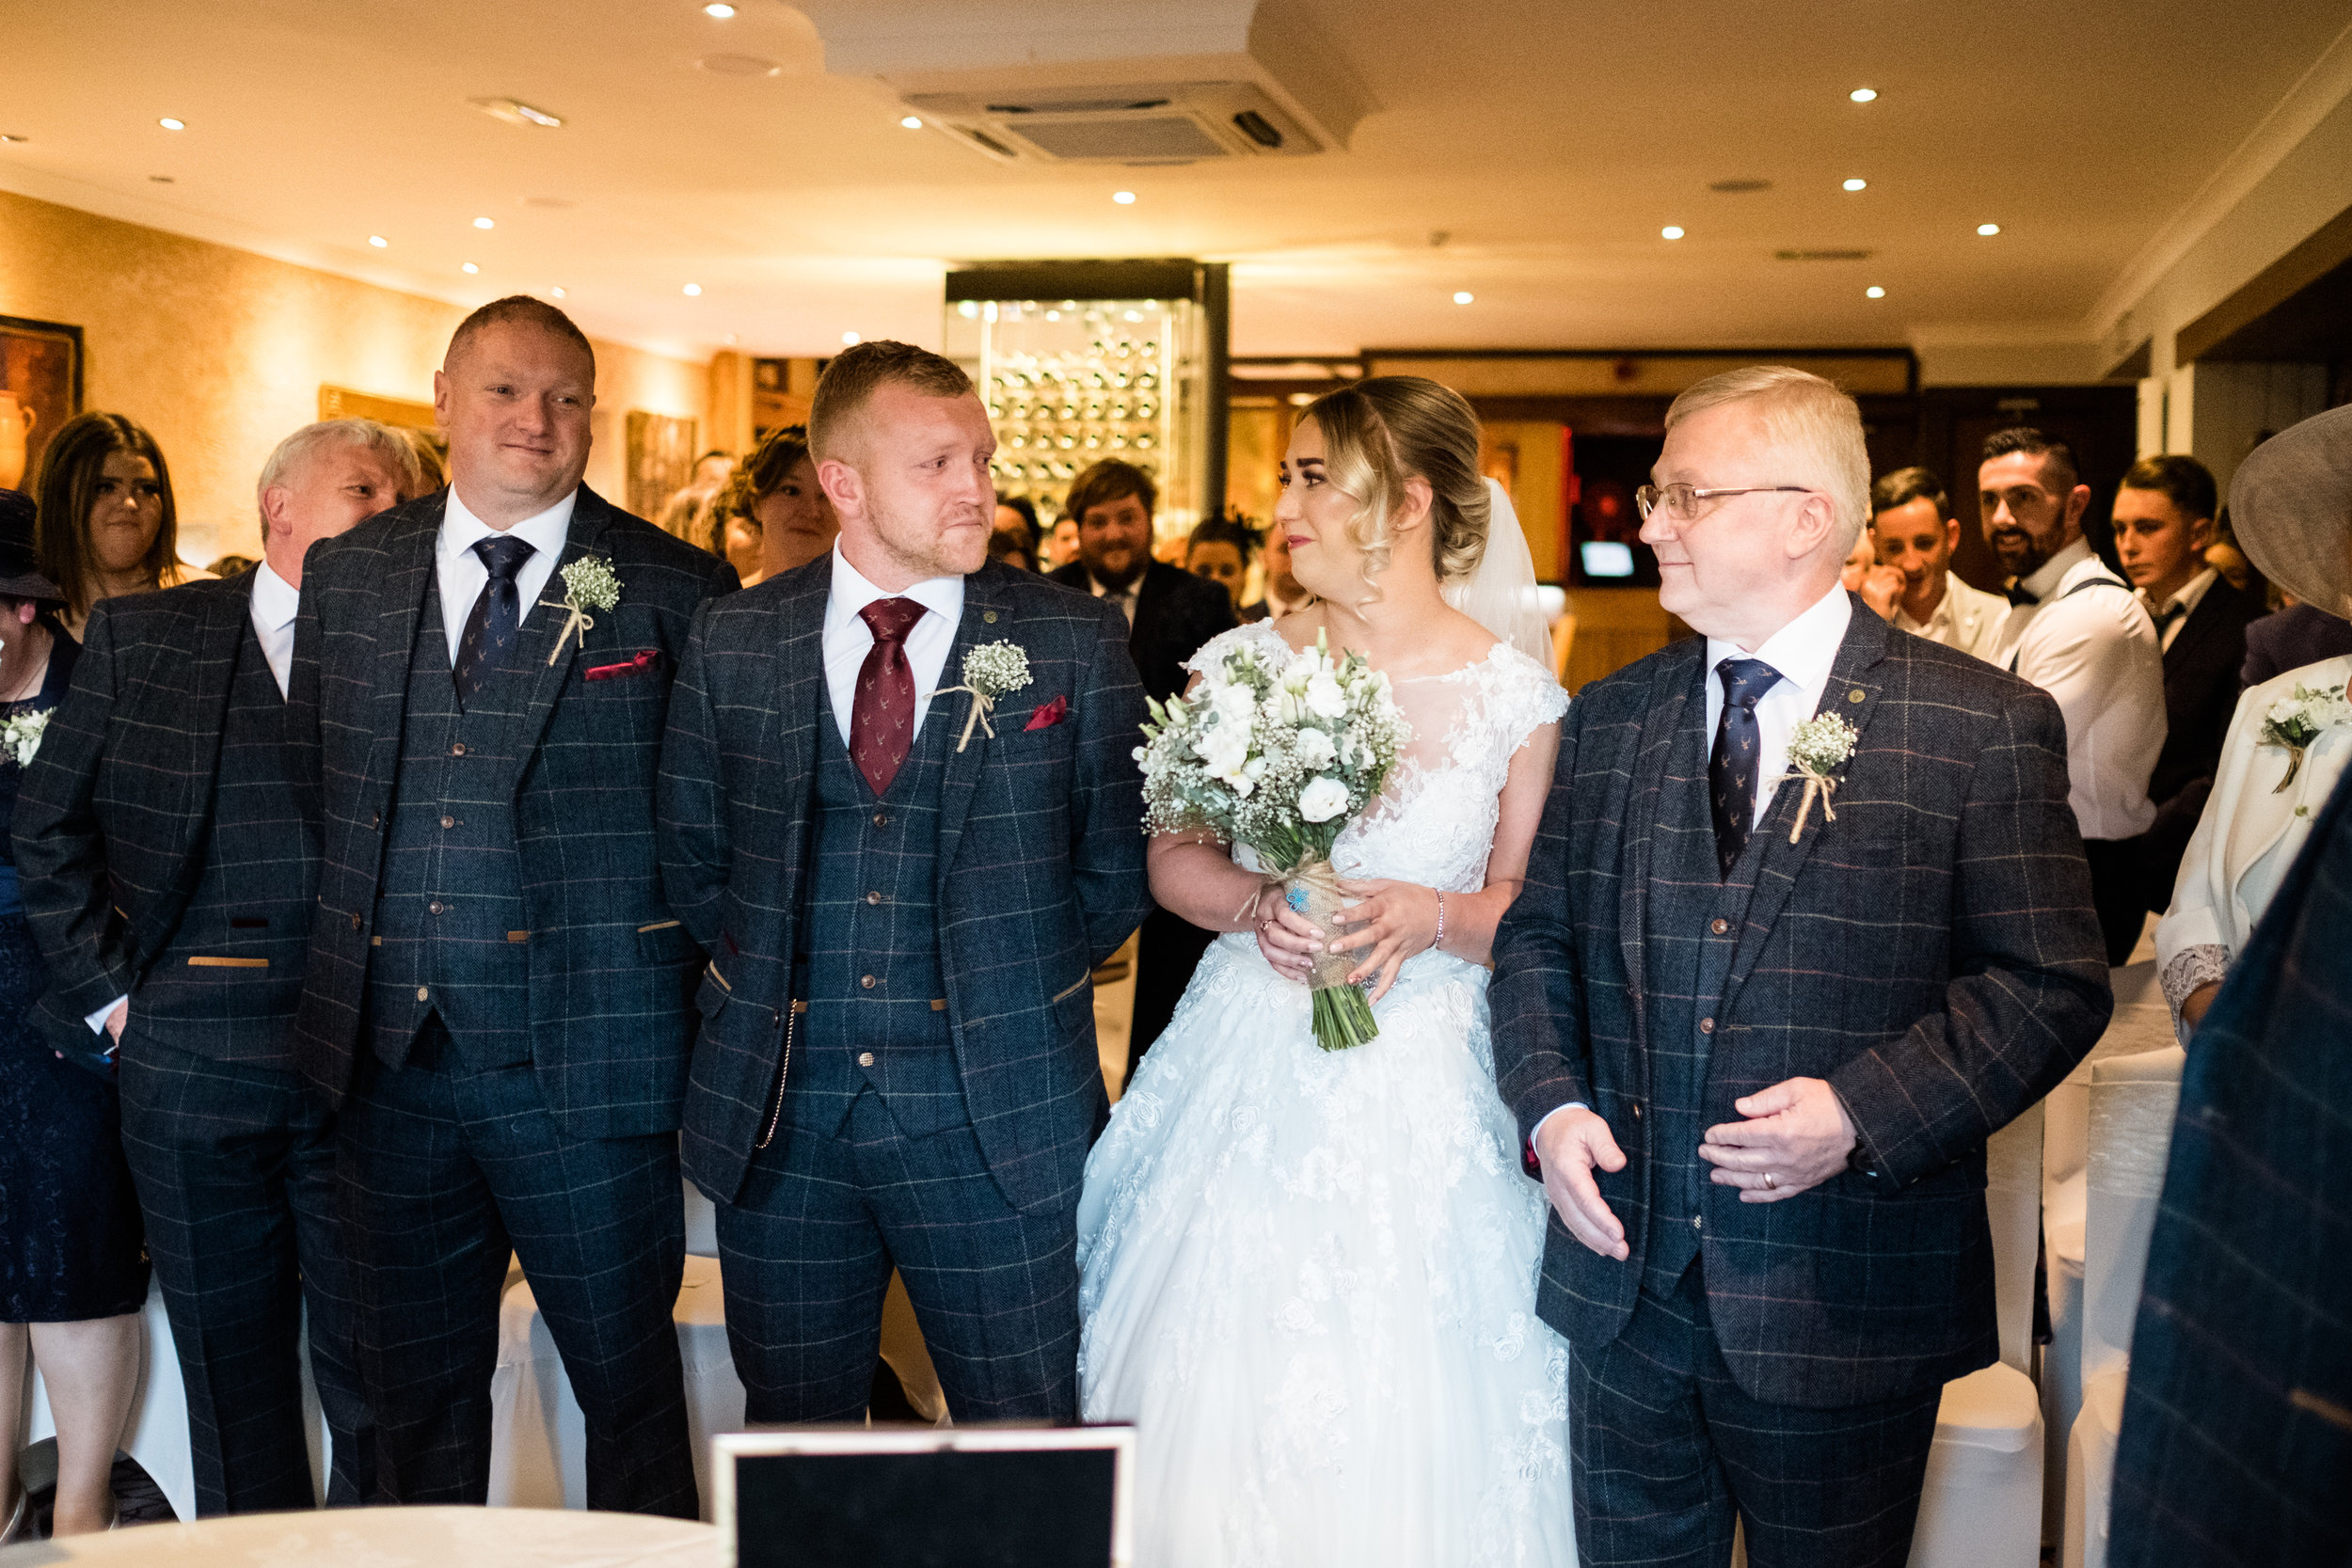 Autumn Wedding Photography at The Three Horseshoes, Blackshaw Moor, Staffordshire Moorlands - Jenny Harper-22.jpg